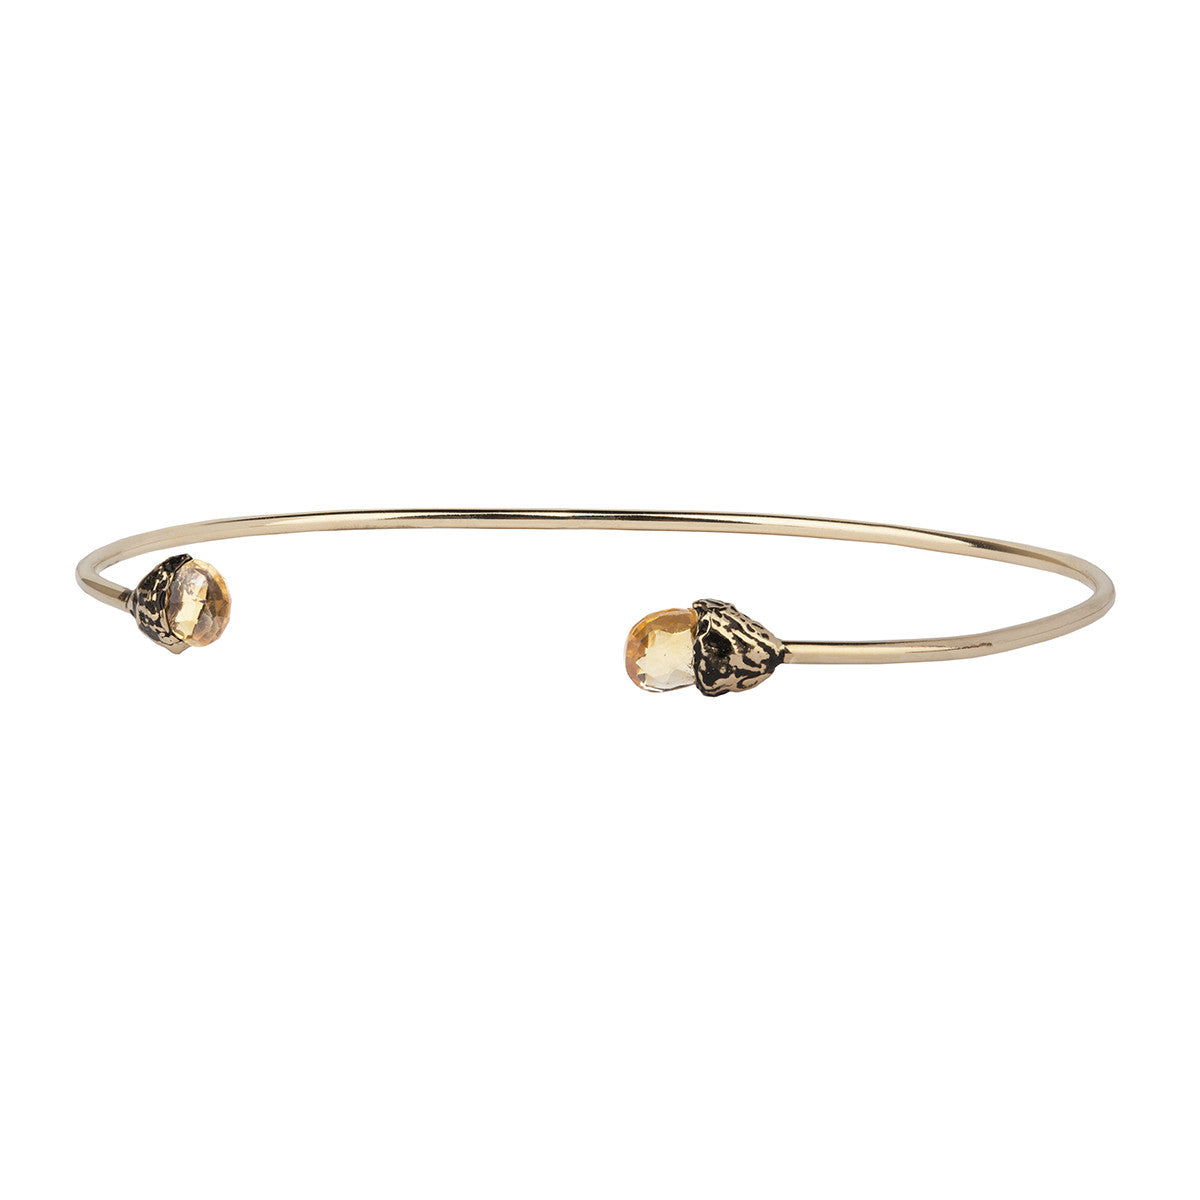 Confidence 14K Gold Capped Attraction Charm Open Bangle